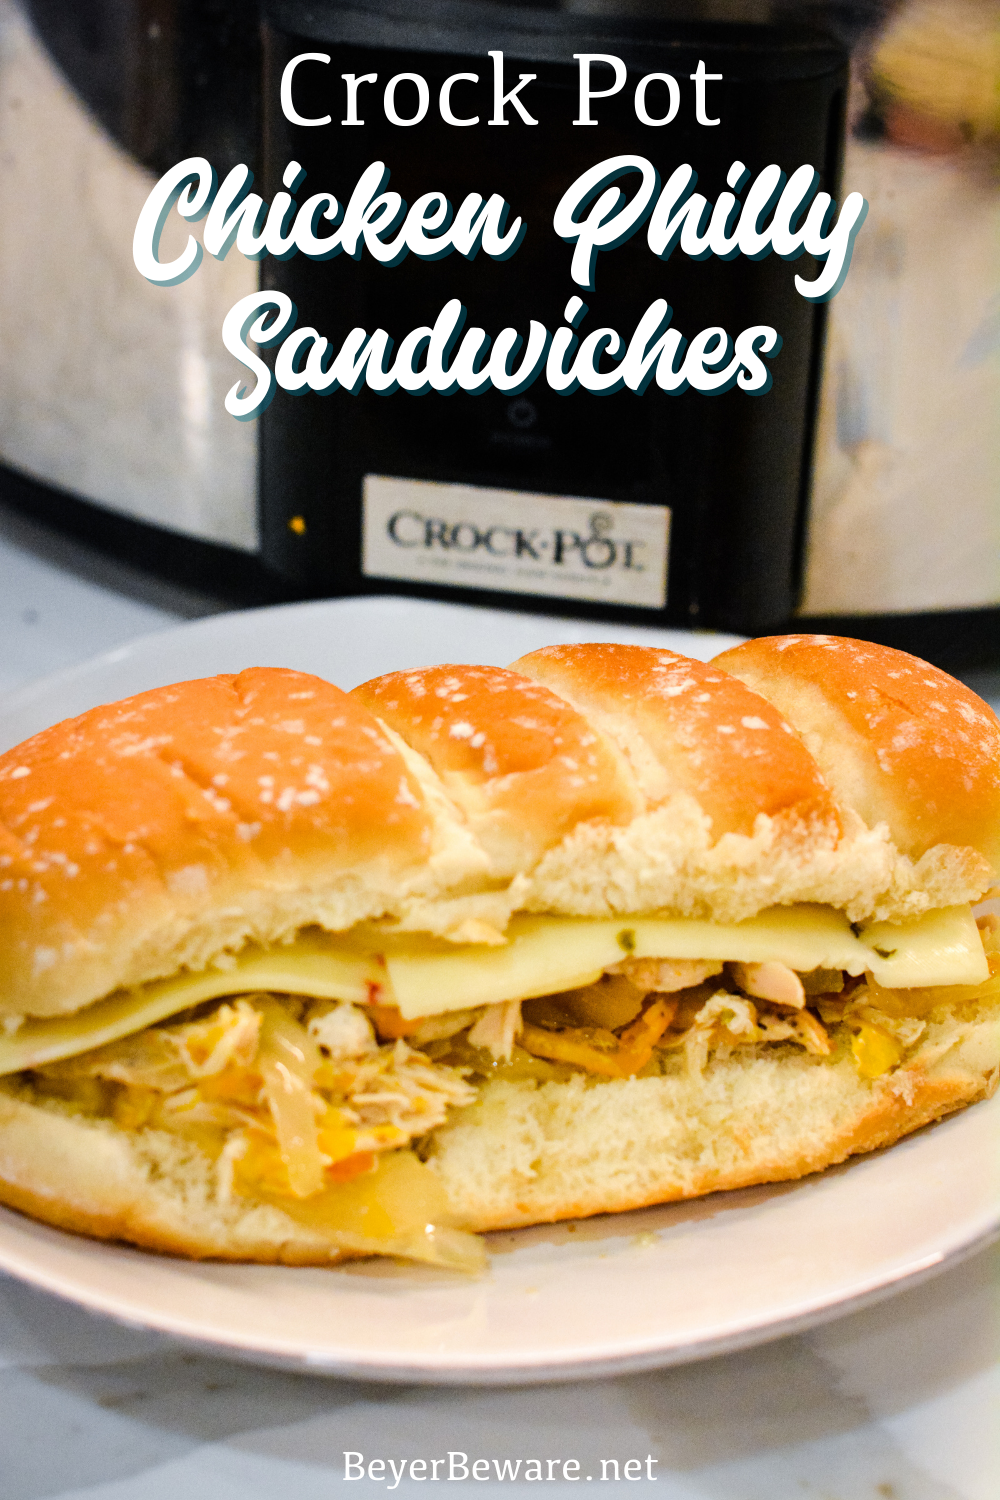 Crock pot chicken philly sandwiches are an easy pulled chicken sandwiches made with onion, peppers, chicken, steak seasoning, and butter.